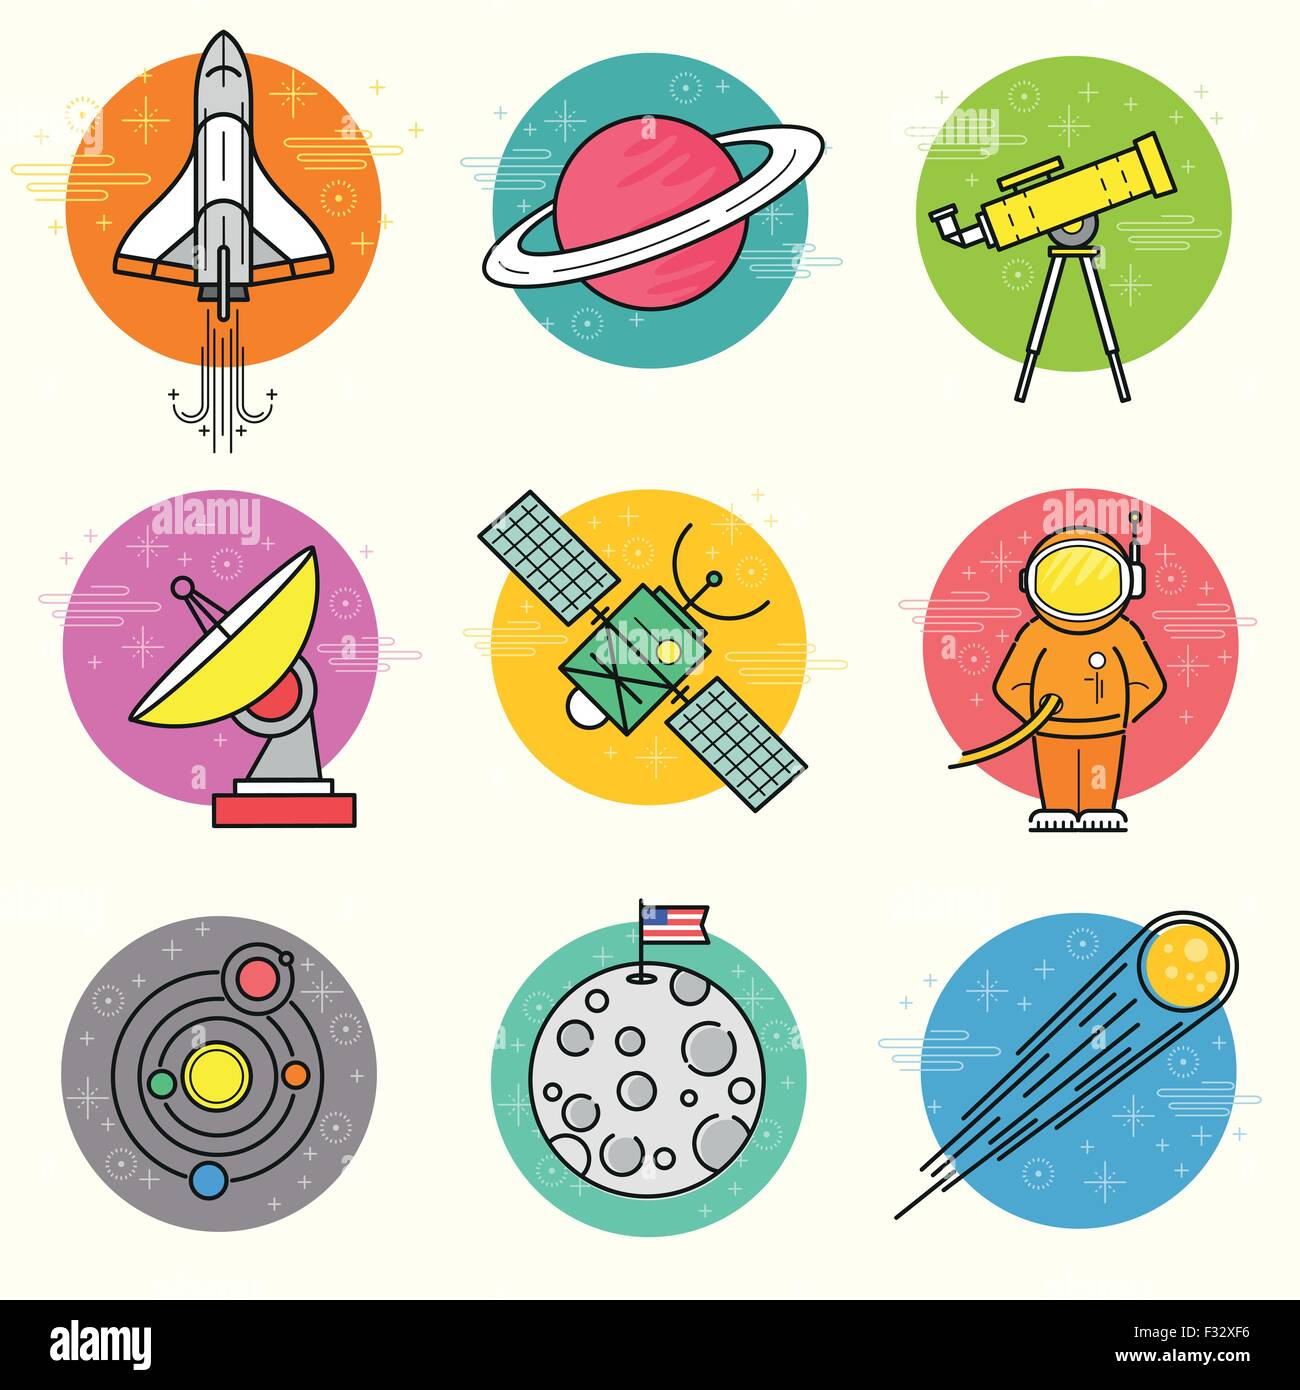 Astronomy Vector Icon Set. A collection of space themed line icons including a planet, rocket, spaceman and solar - Stock Image